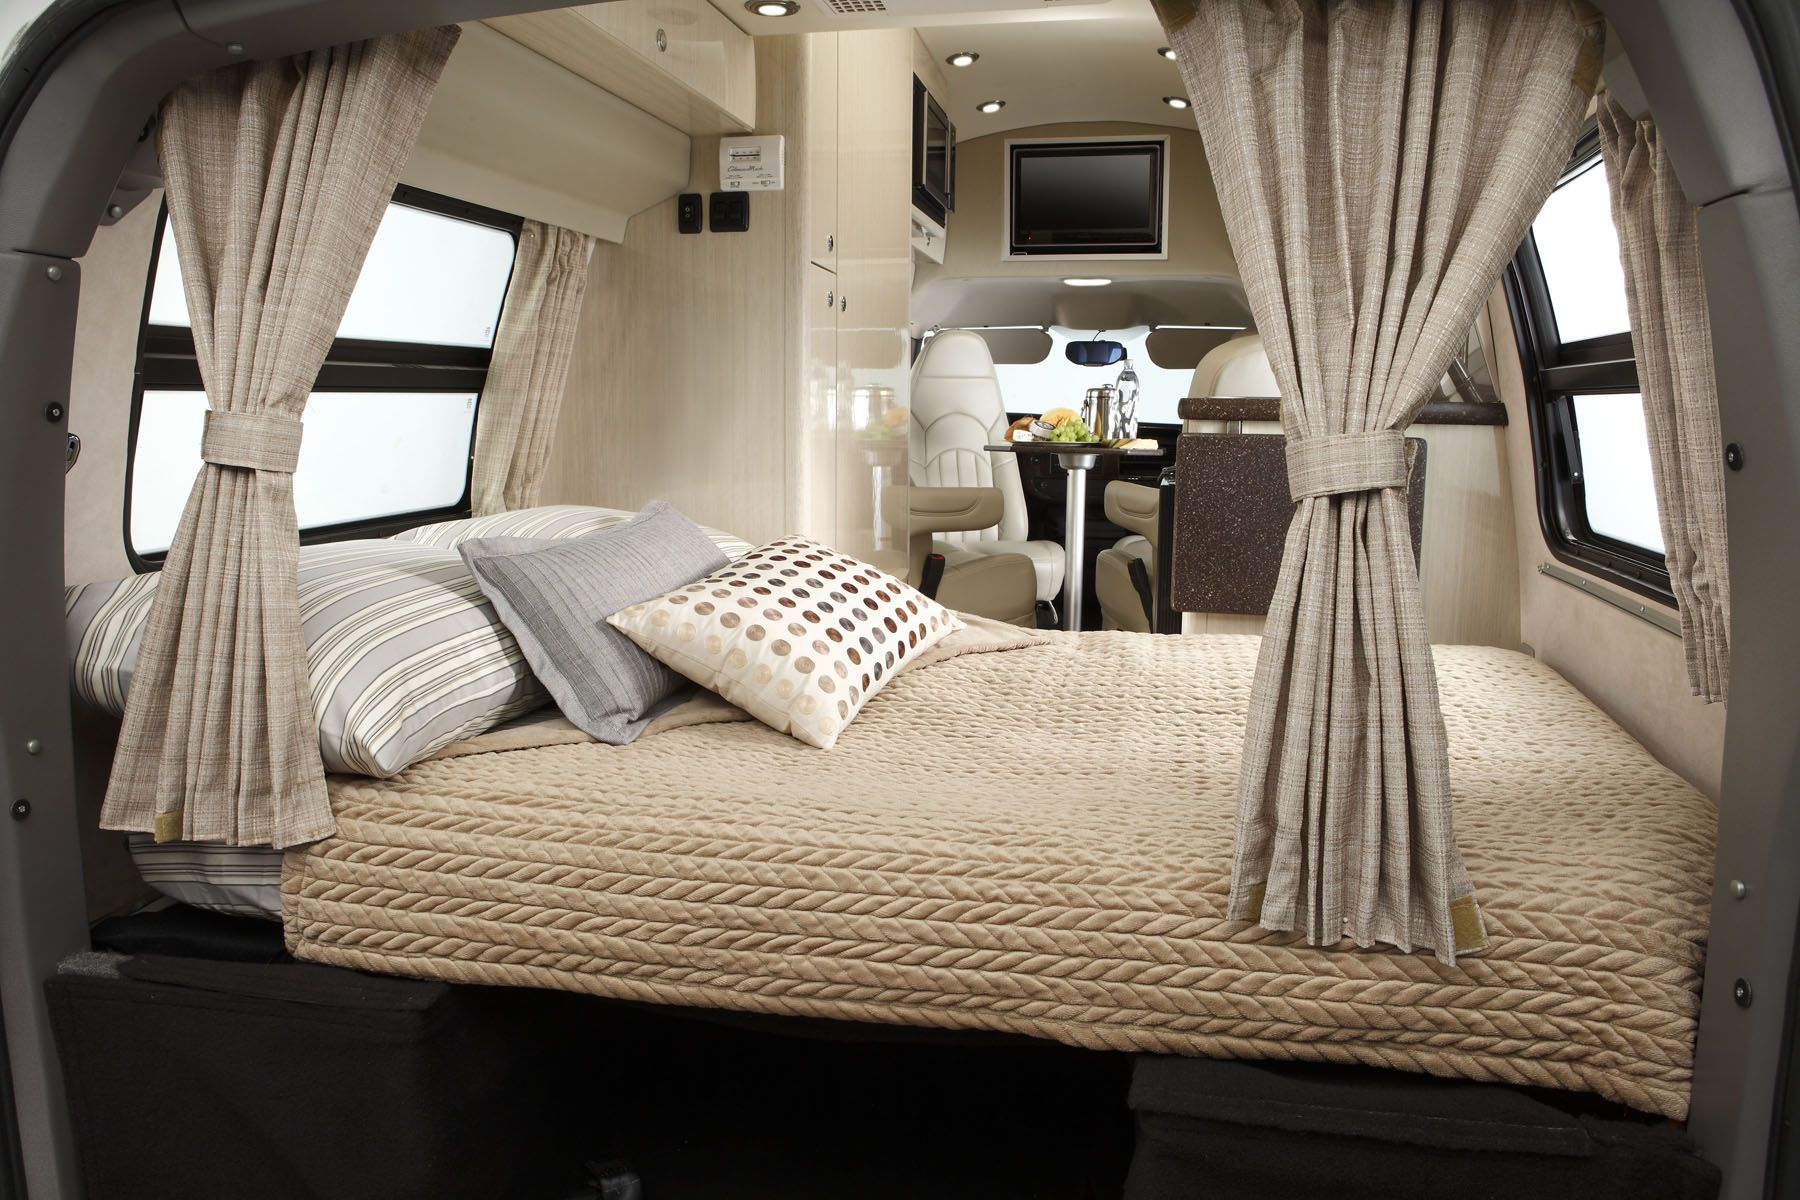 2011 Airstream Avenue Class B Motorhome Bed Modern